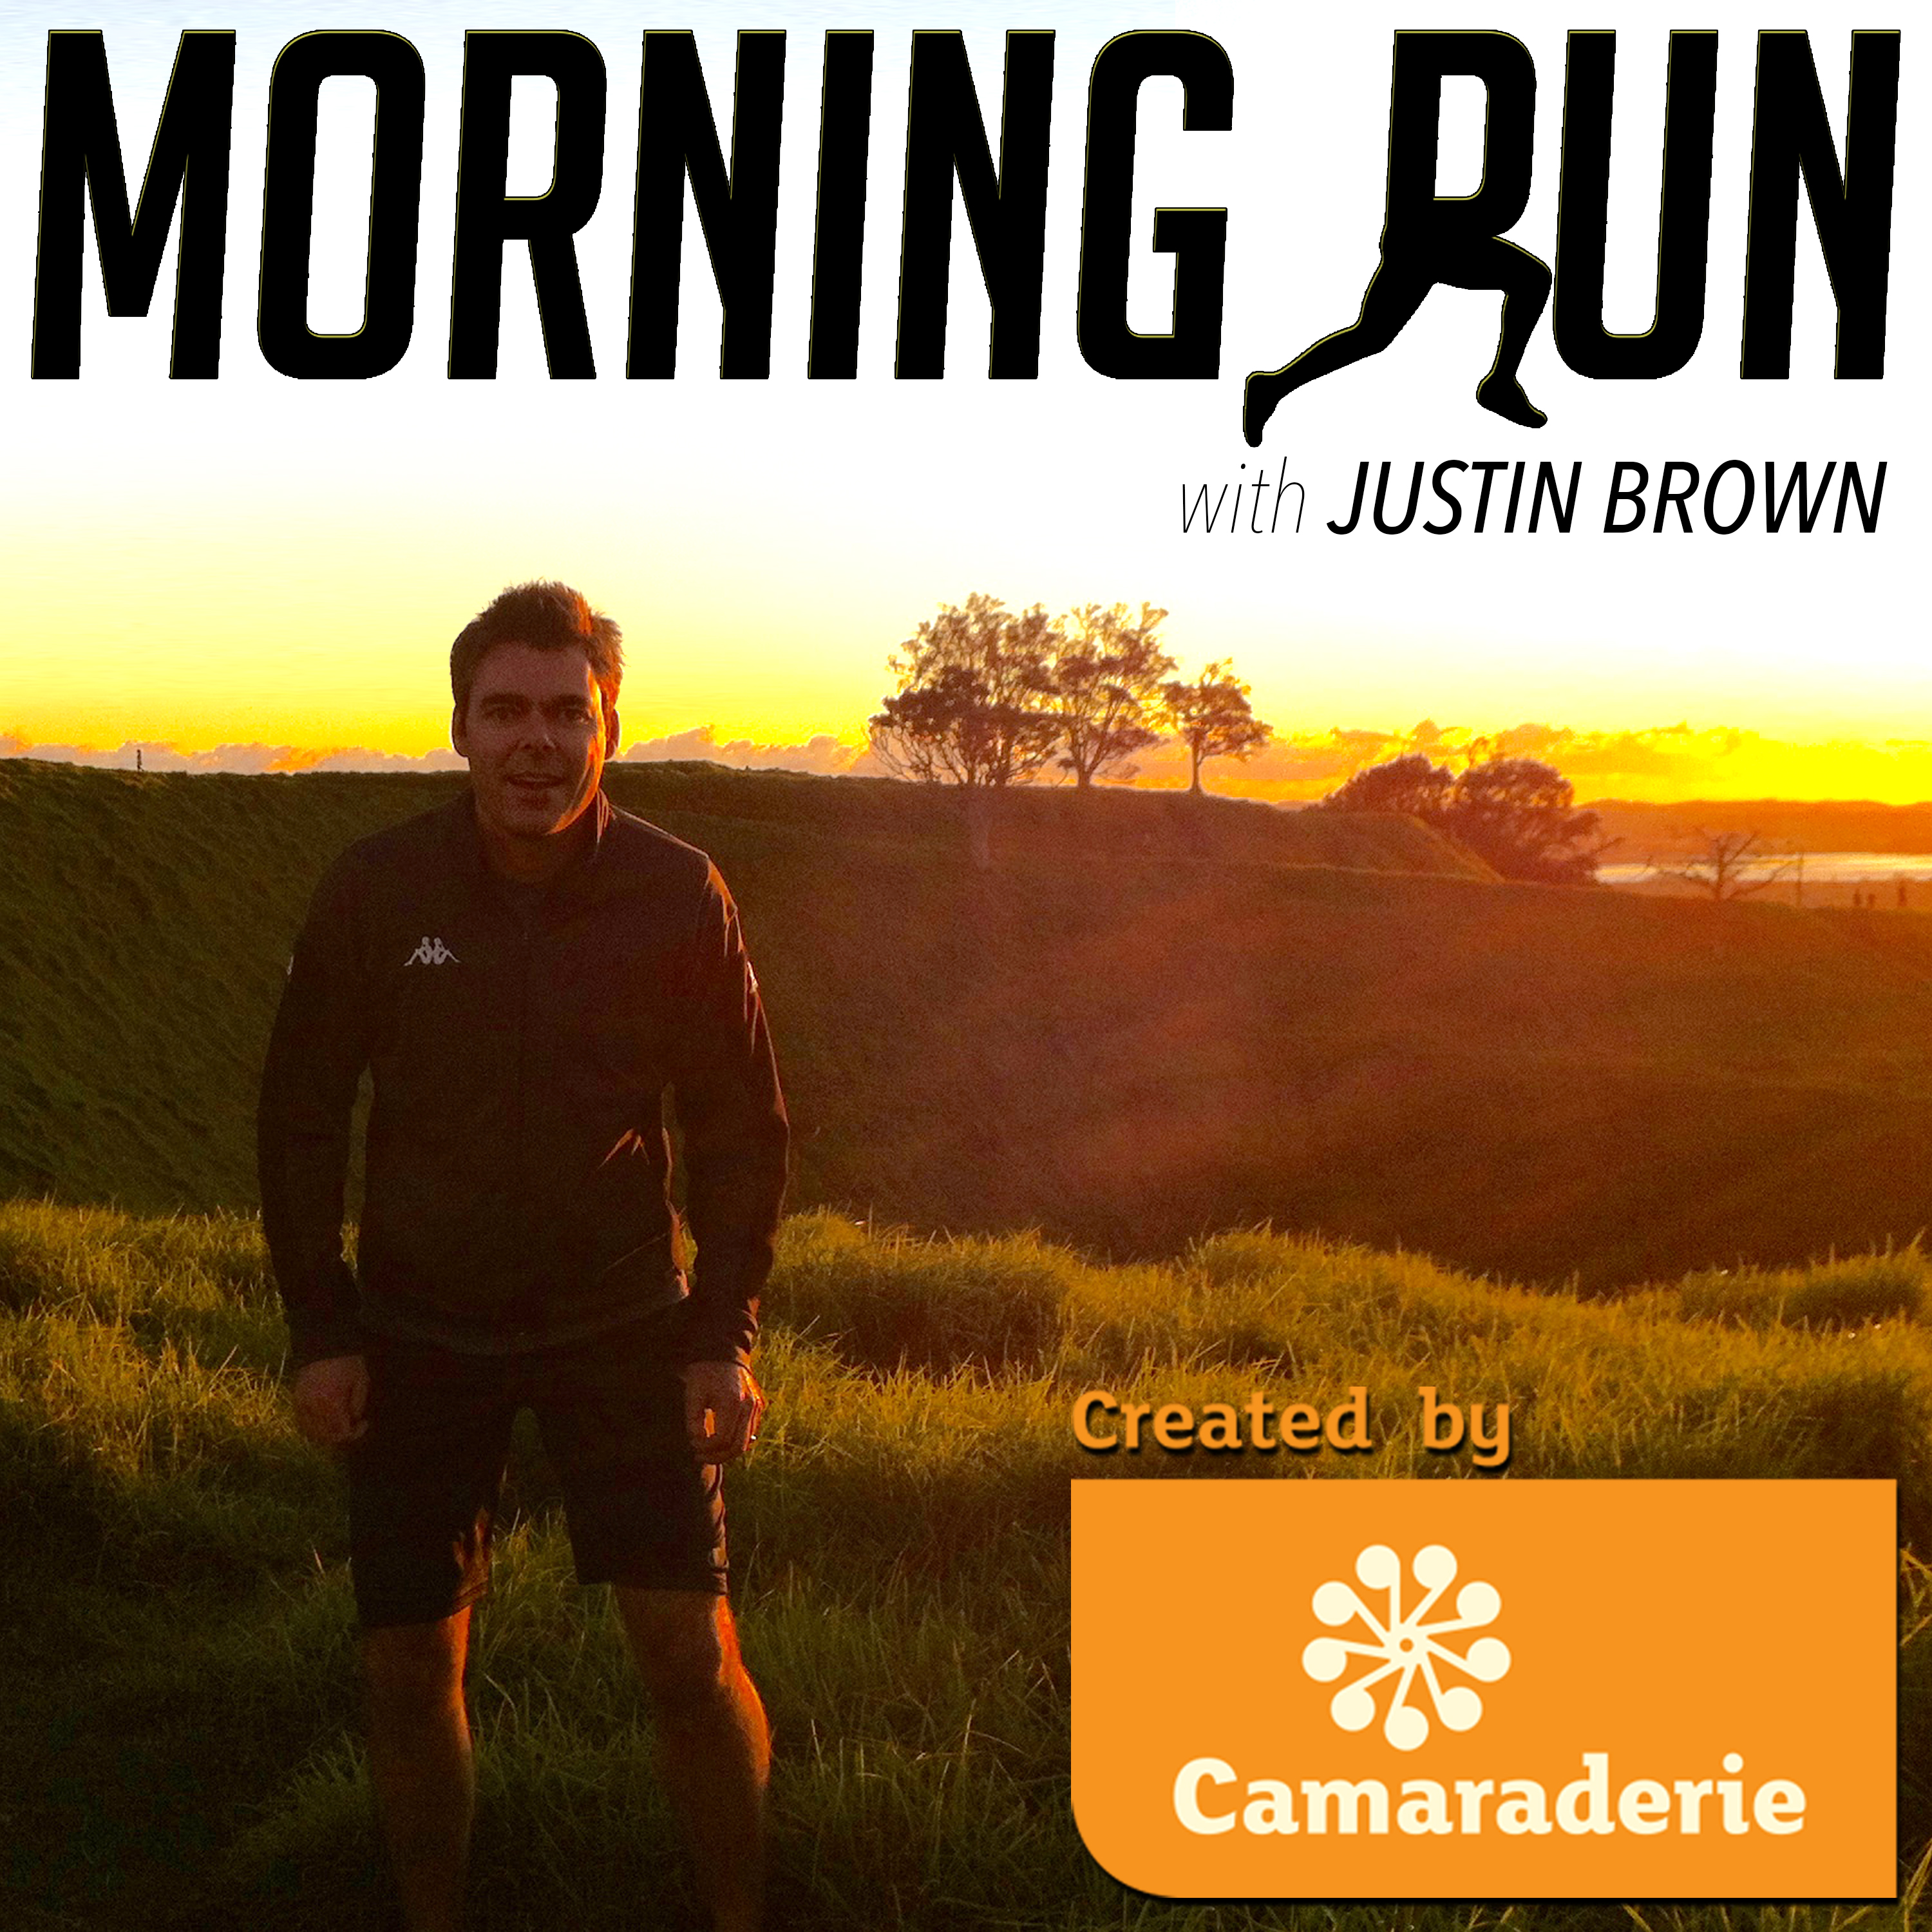 Morning Run with Justin Brown